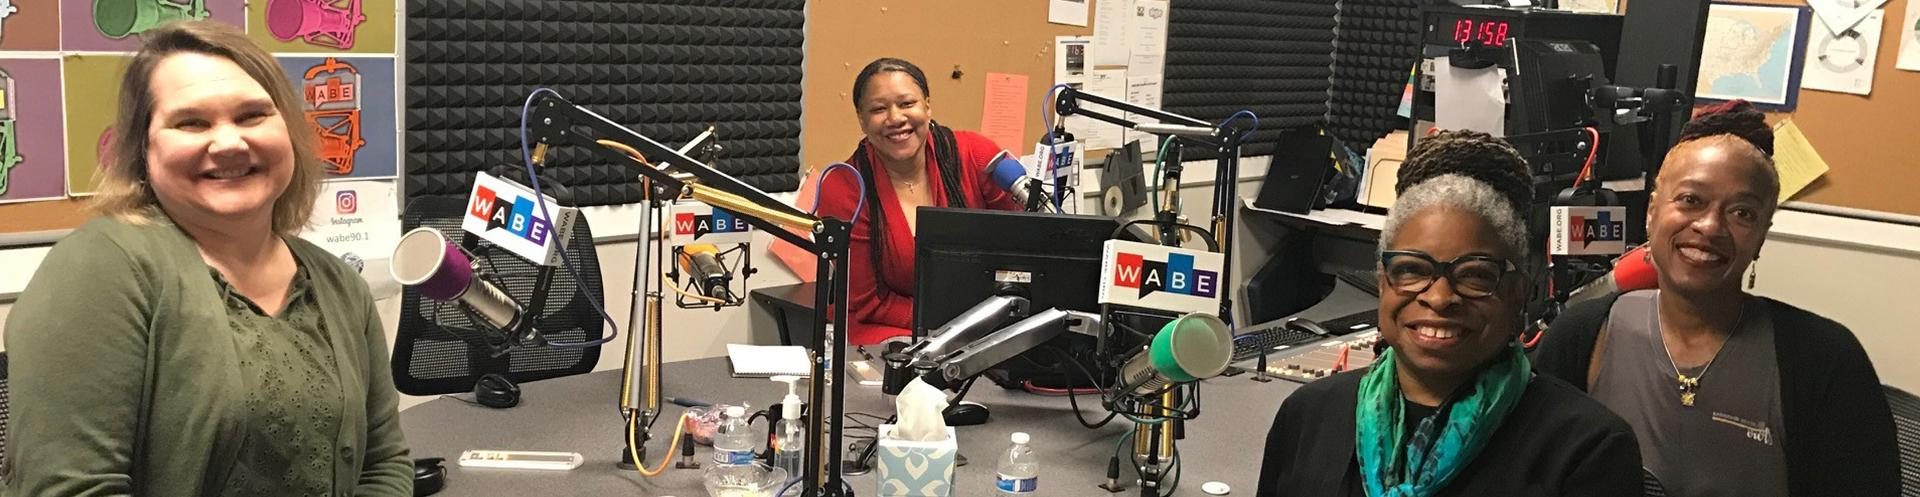 Social science research highlighted on WABE